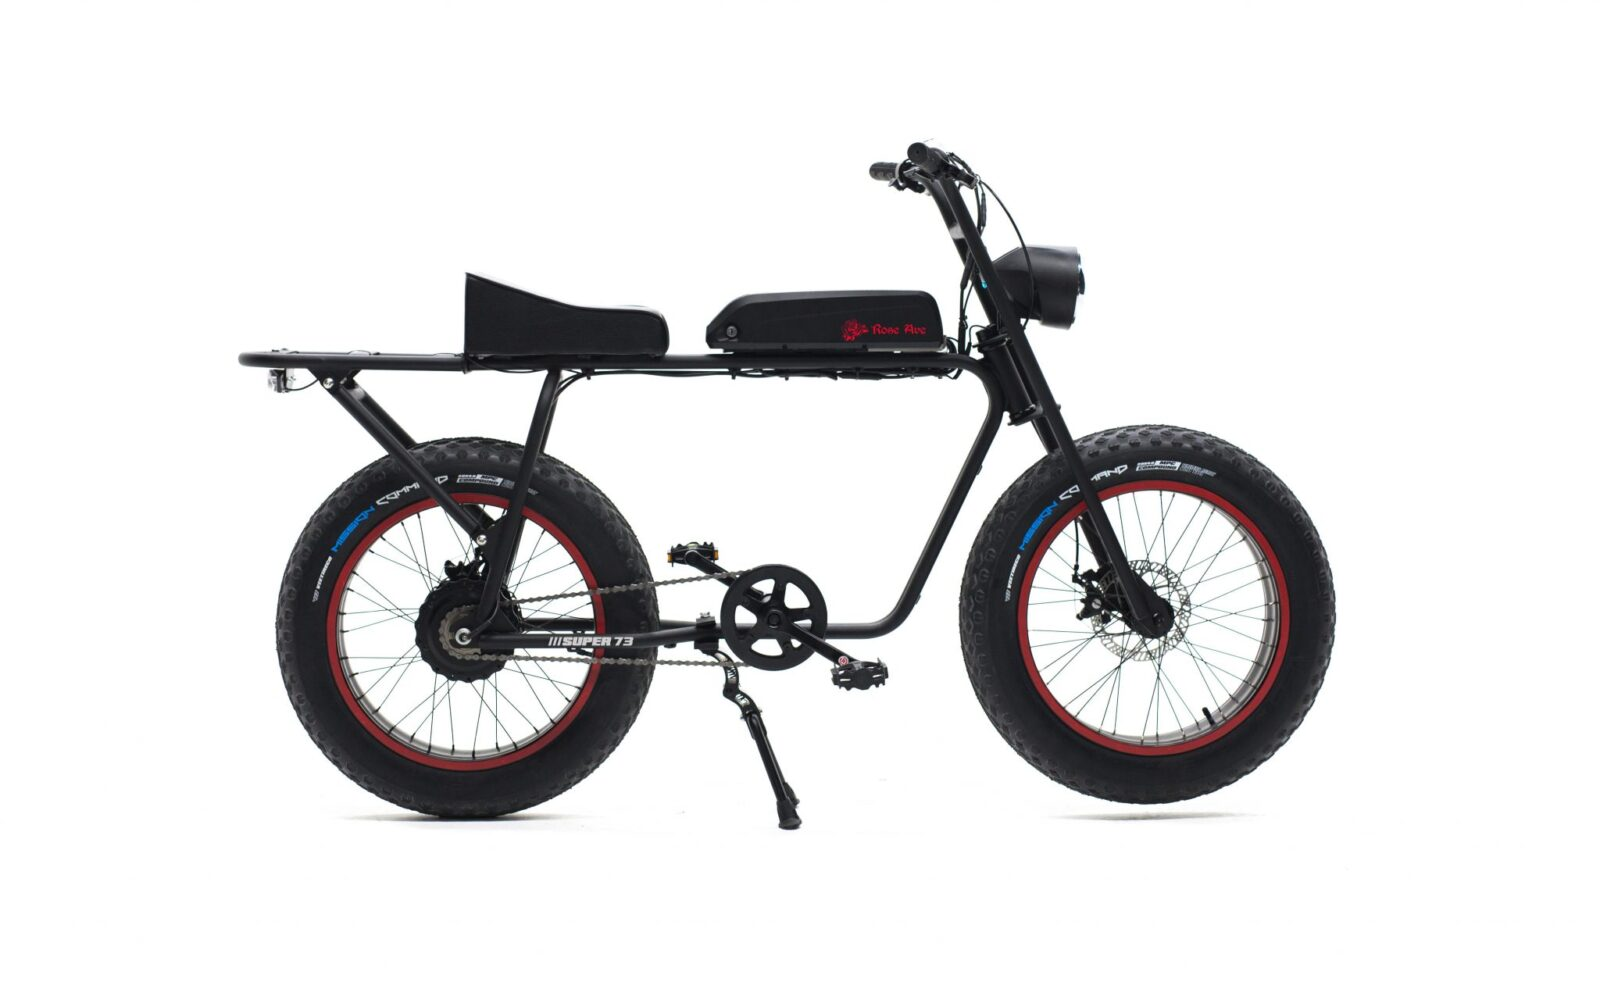 Lithium Cycles Super 73 Scout Electric Bicycle 1600x996 - Lithium Cycles Super 73 Scout